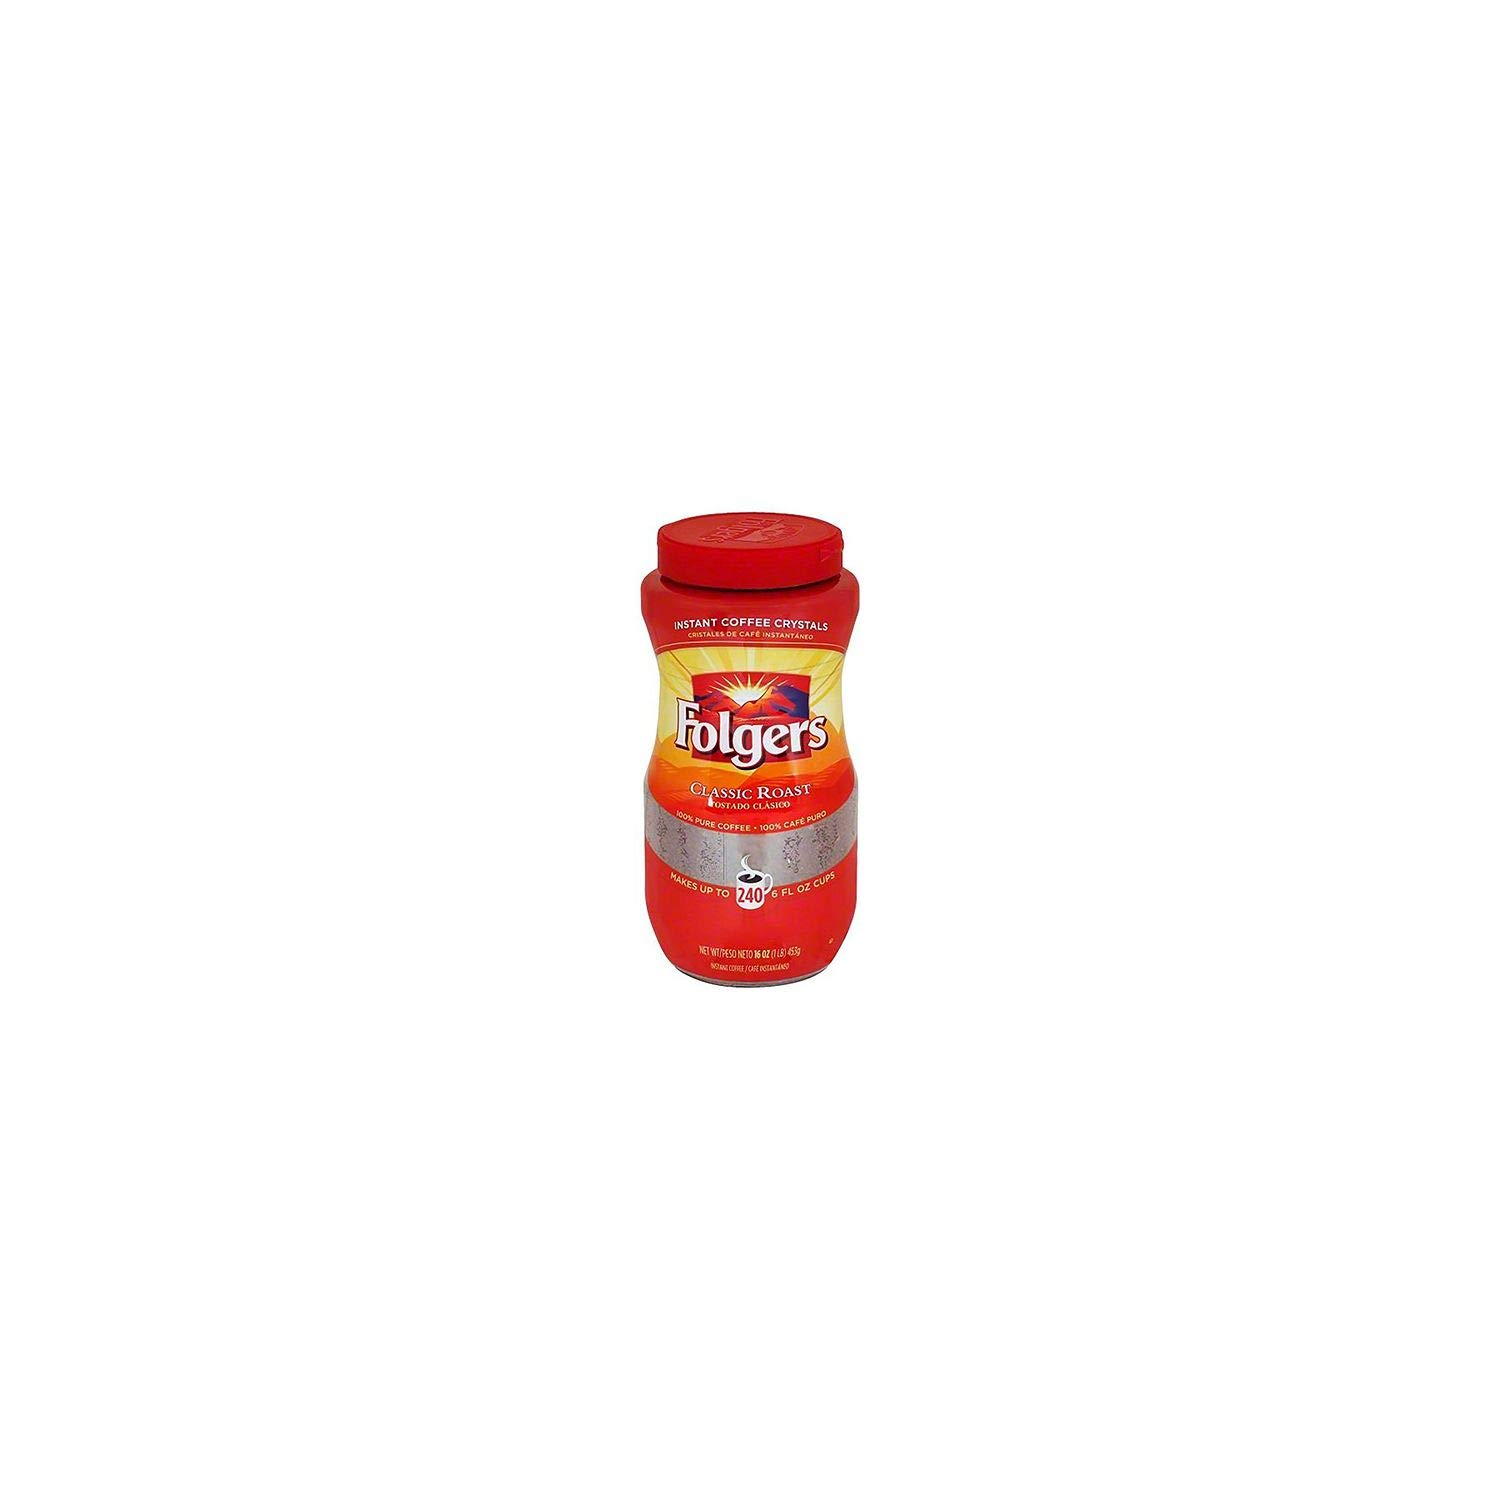 Folgers Classic Roast Instant Coffee, 1LBS (Pack of 2) Ygkclw